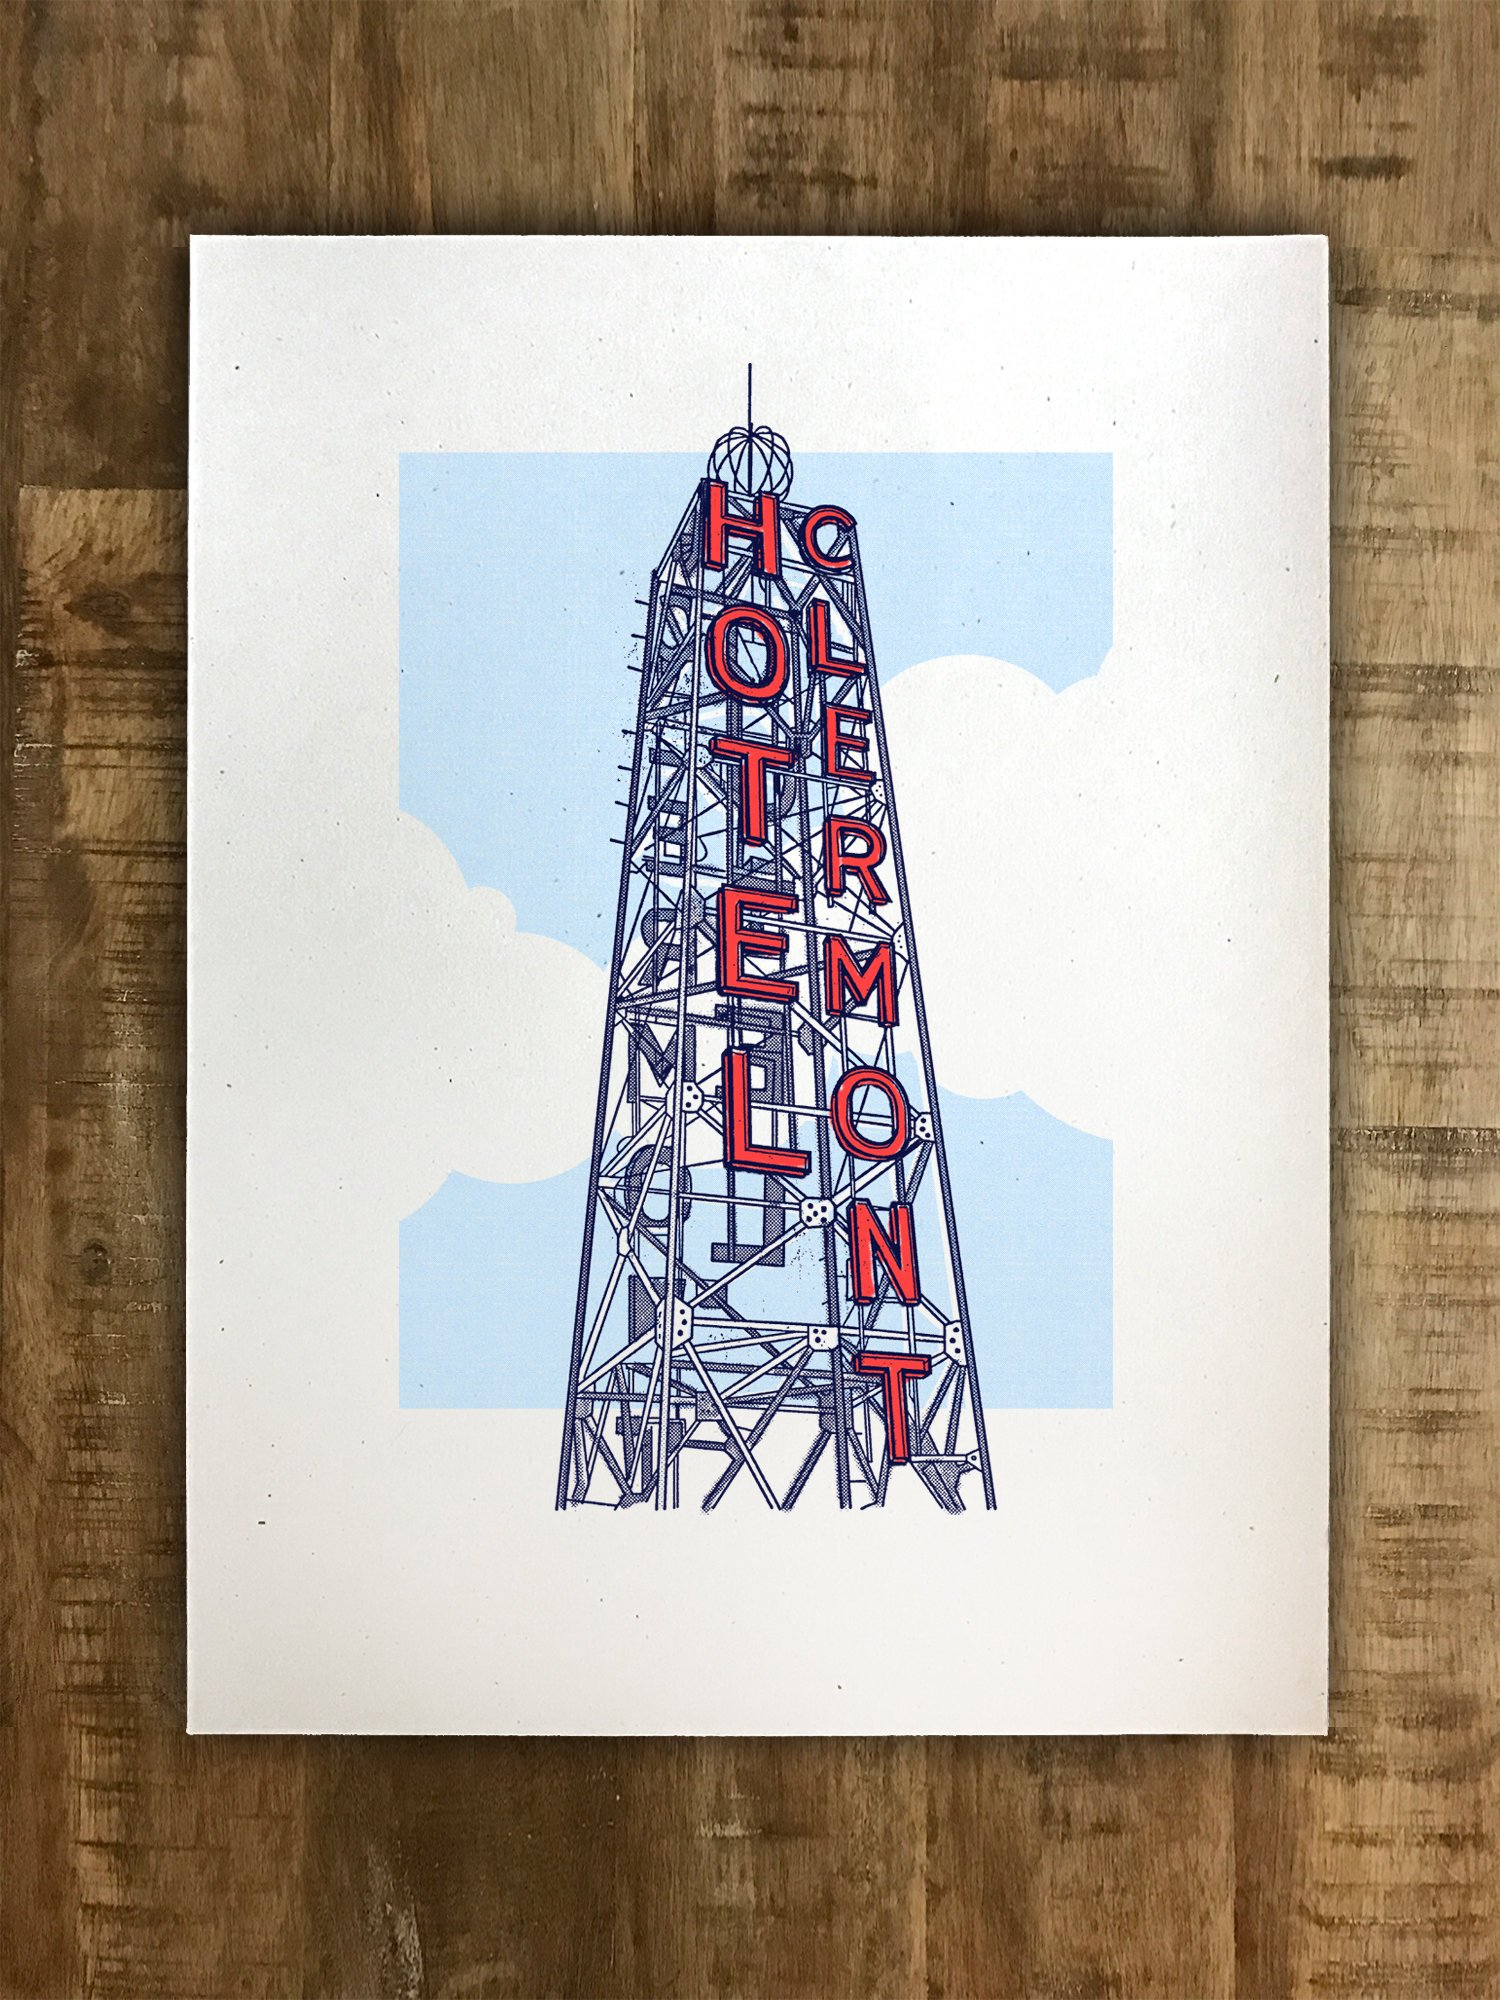 Hotel Clermont Tower - by Seth WcWhorter - Atlanta, Georgia - Illustration - Multiple Sizes - (Original Print) - Original illustration of the iconic Hotel Clermont Tower in Atlanta, Georgia.Offered in 3 sizes. $15+